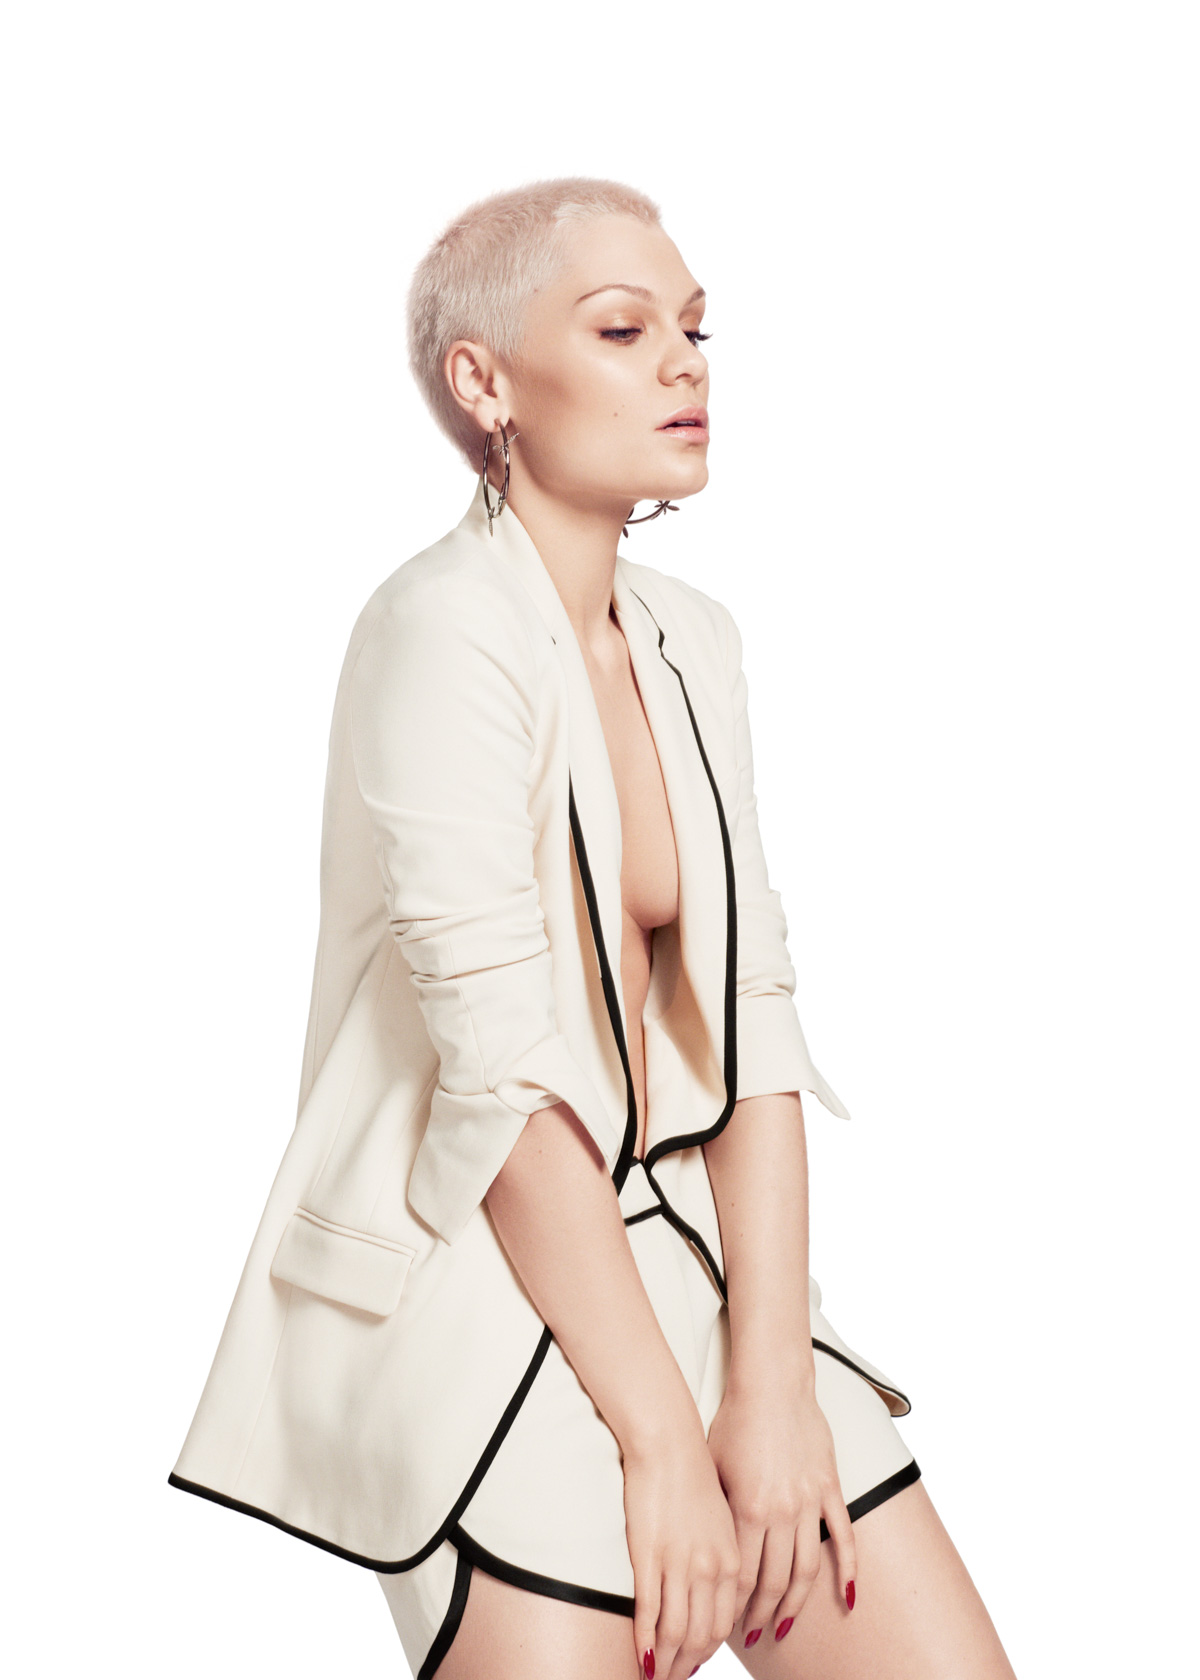 House Of Usher Jessie J by David Roemer 05